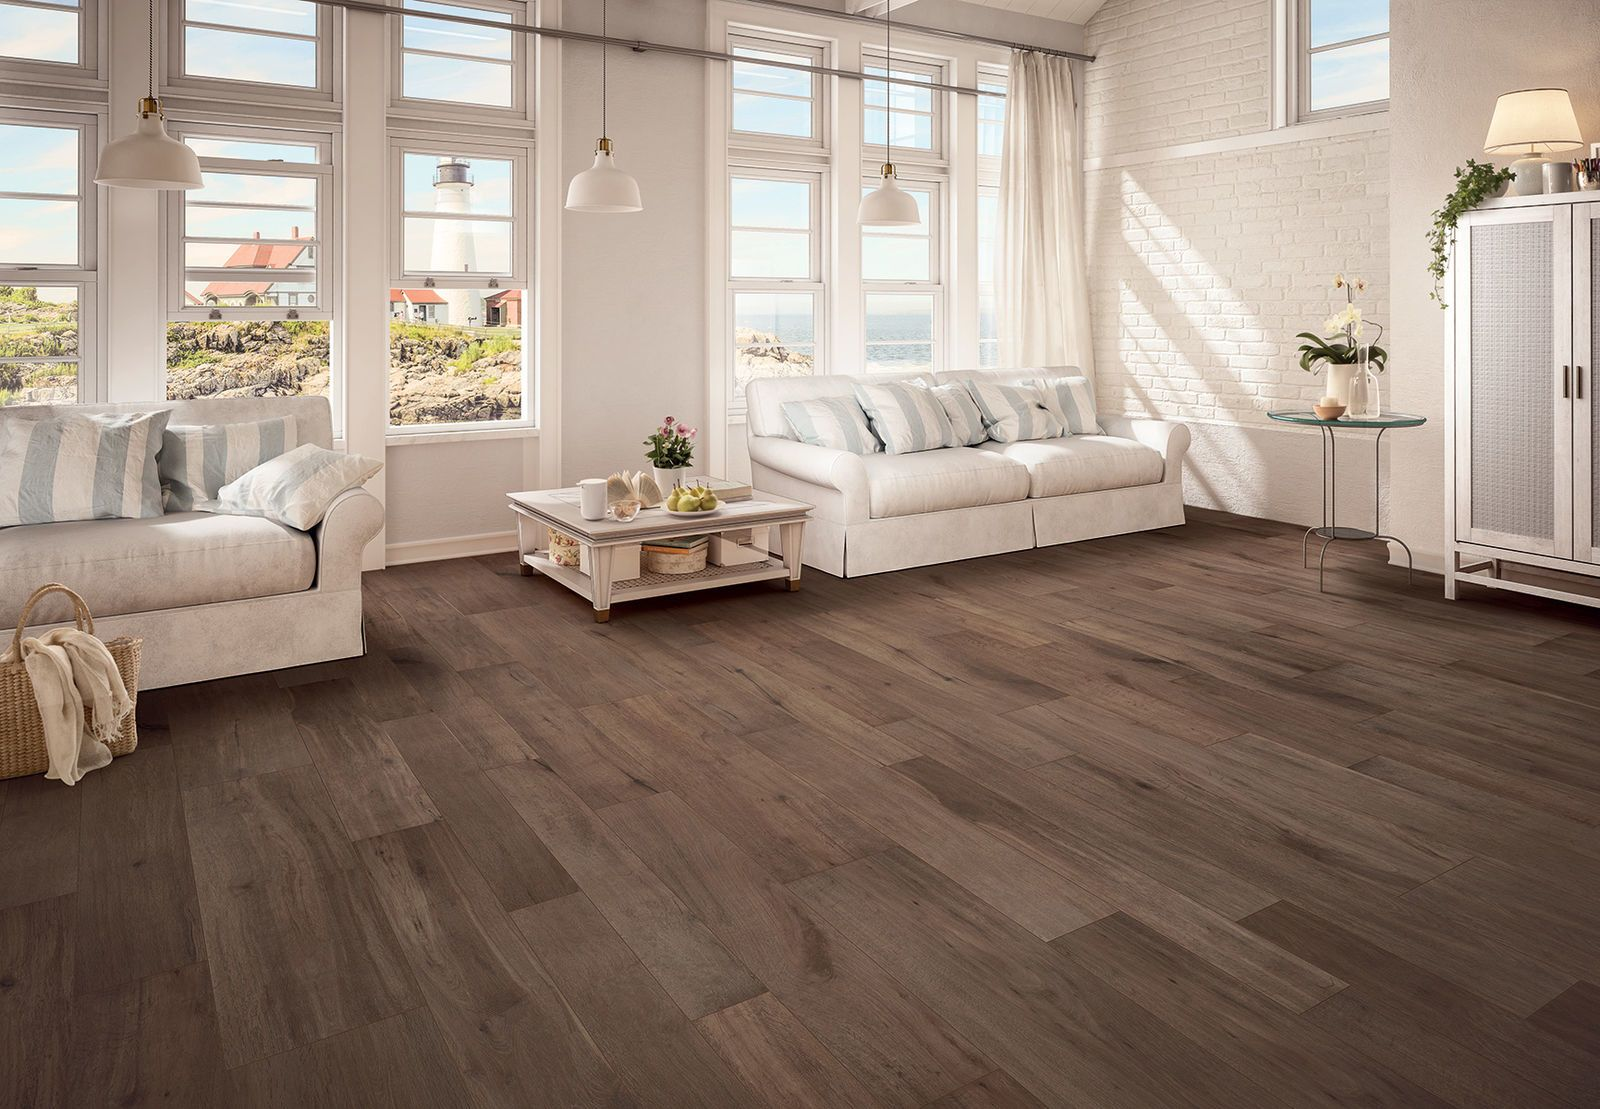 Piastrelle Keope Note Ceramiche Keope